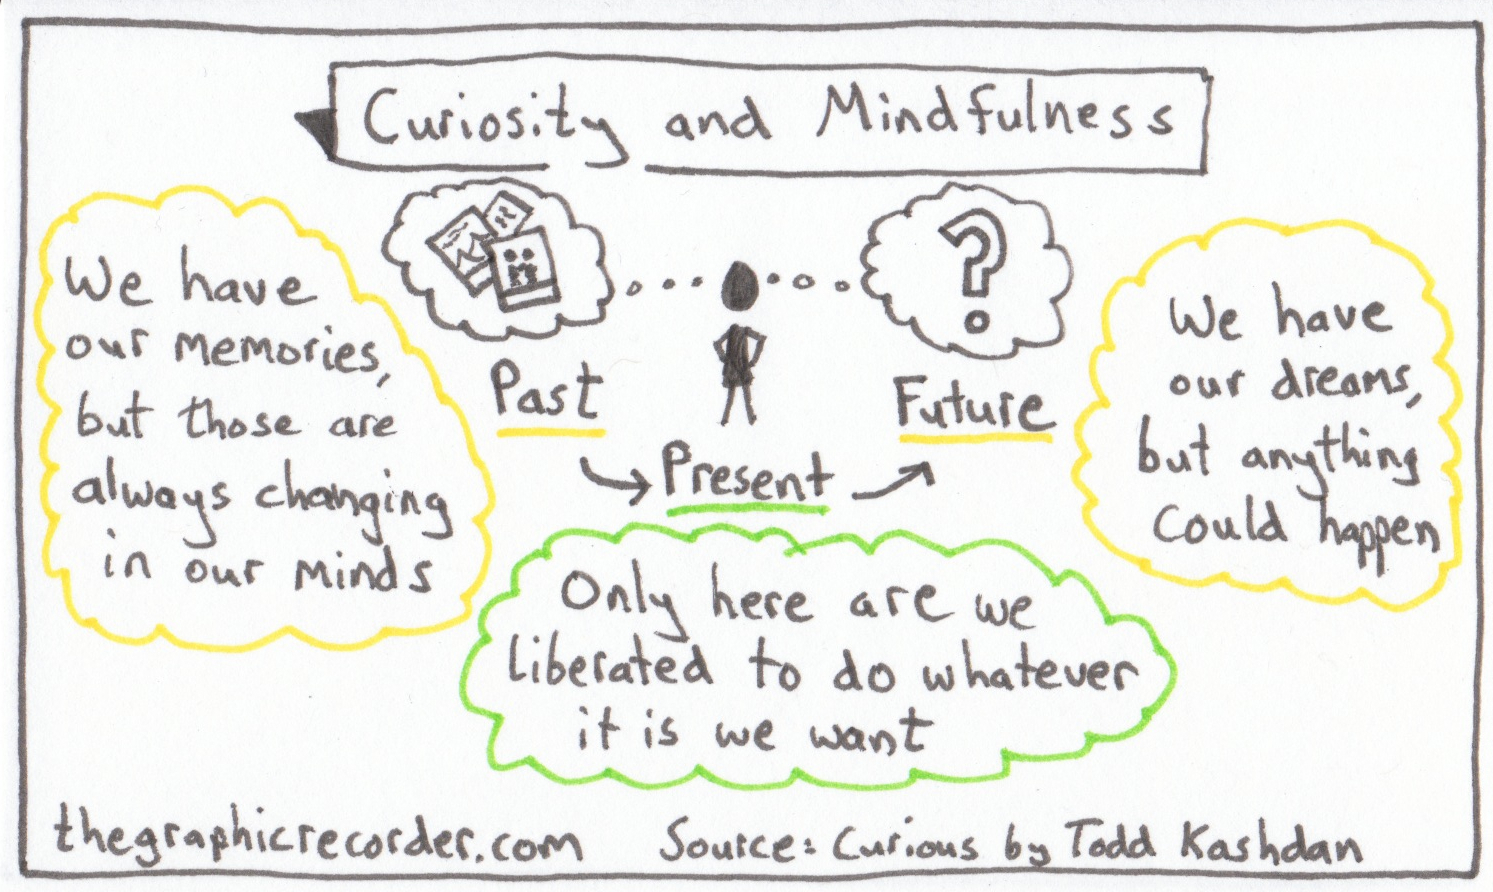 The Graphic Recorder - One Card One Concept - Curiosity and Mindfulness - Curious? - Todd Kashdan